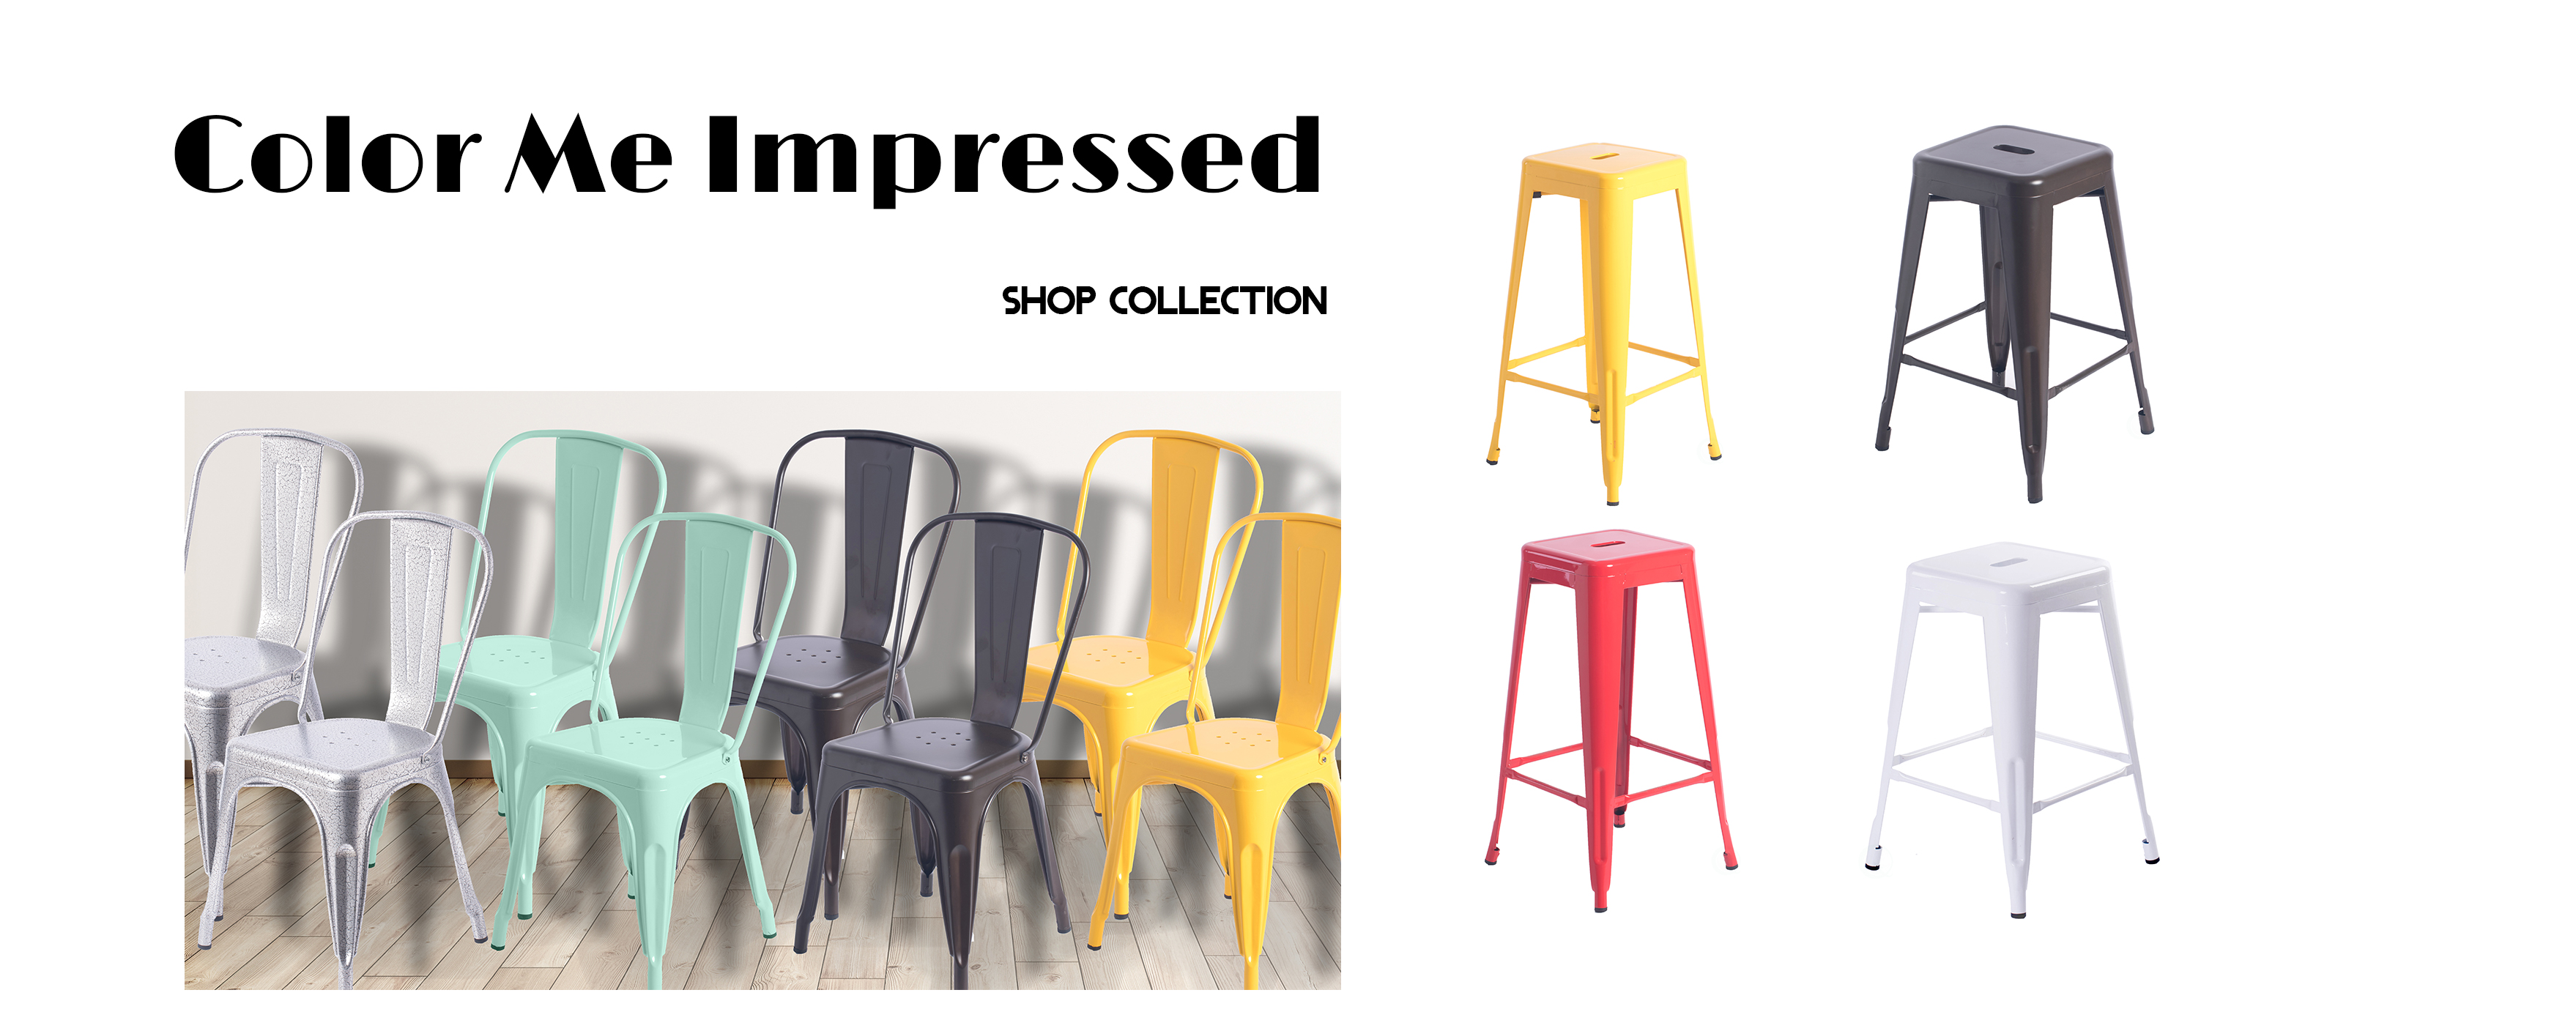 colorful metal chairs and stools